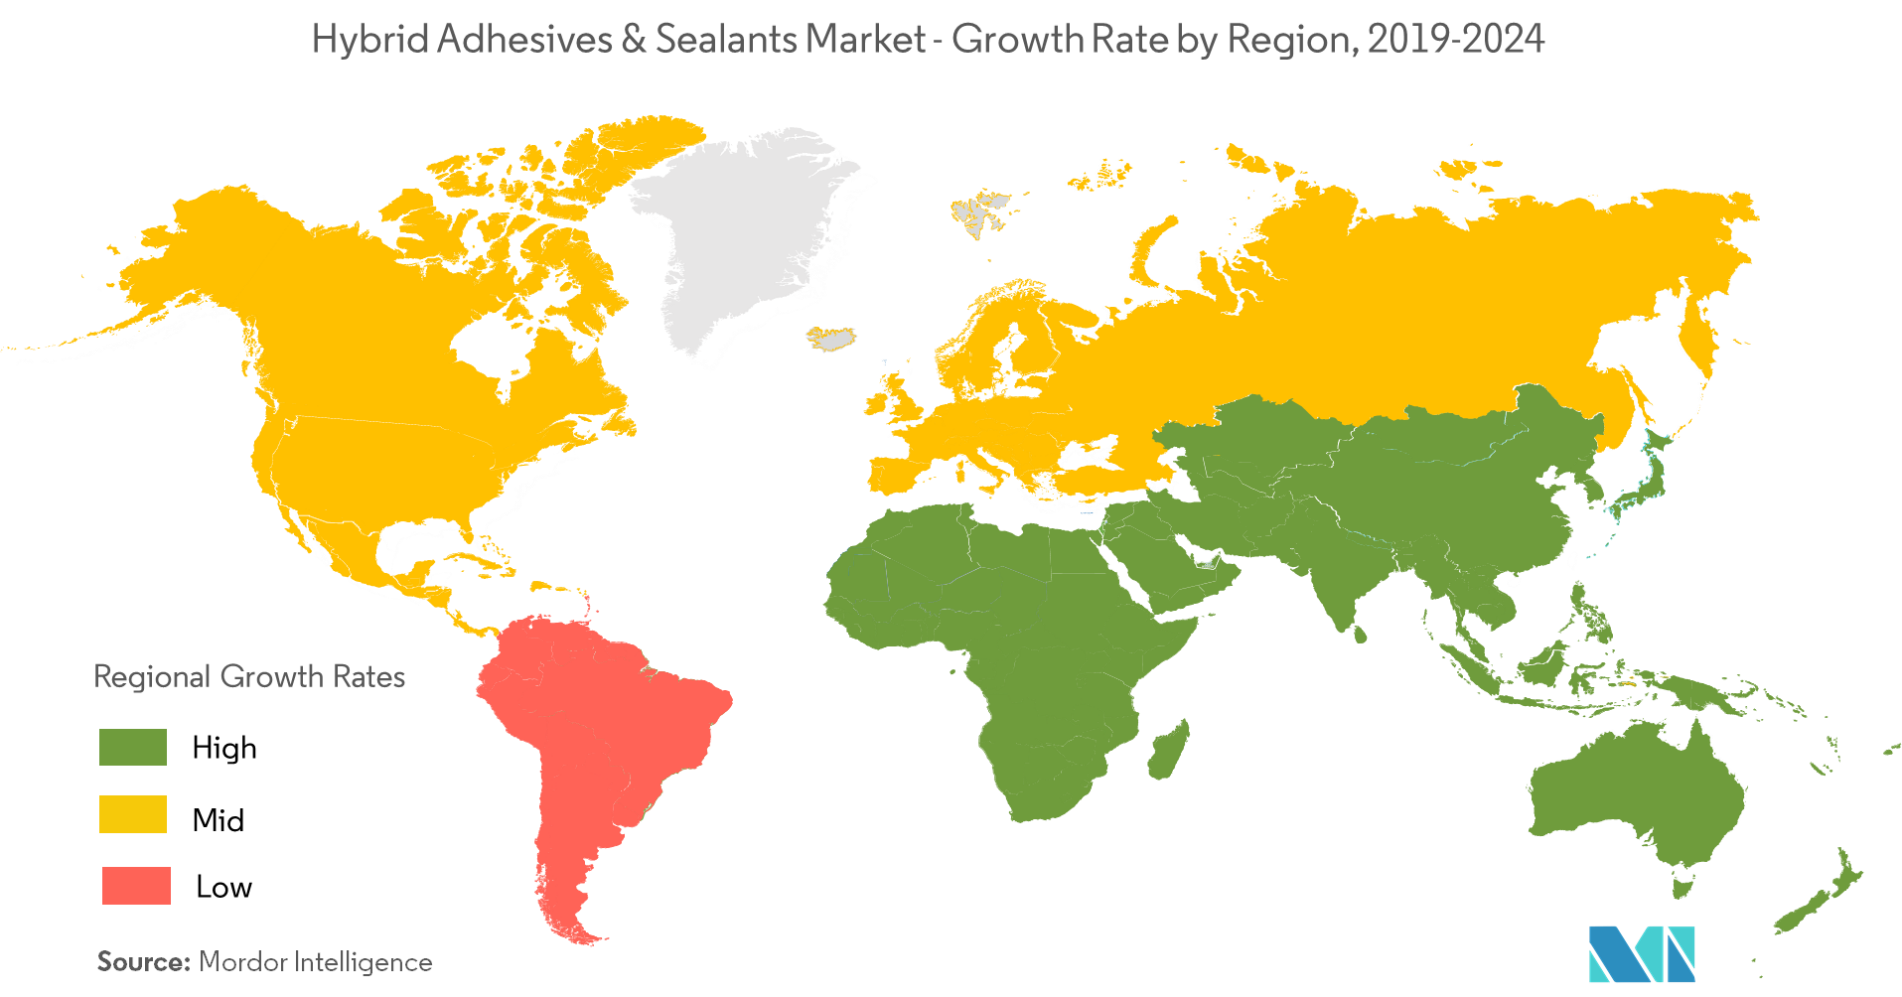 Hybrid Adhesives and Sealants Market - Regional Trends